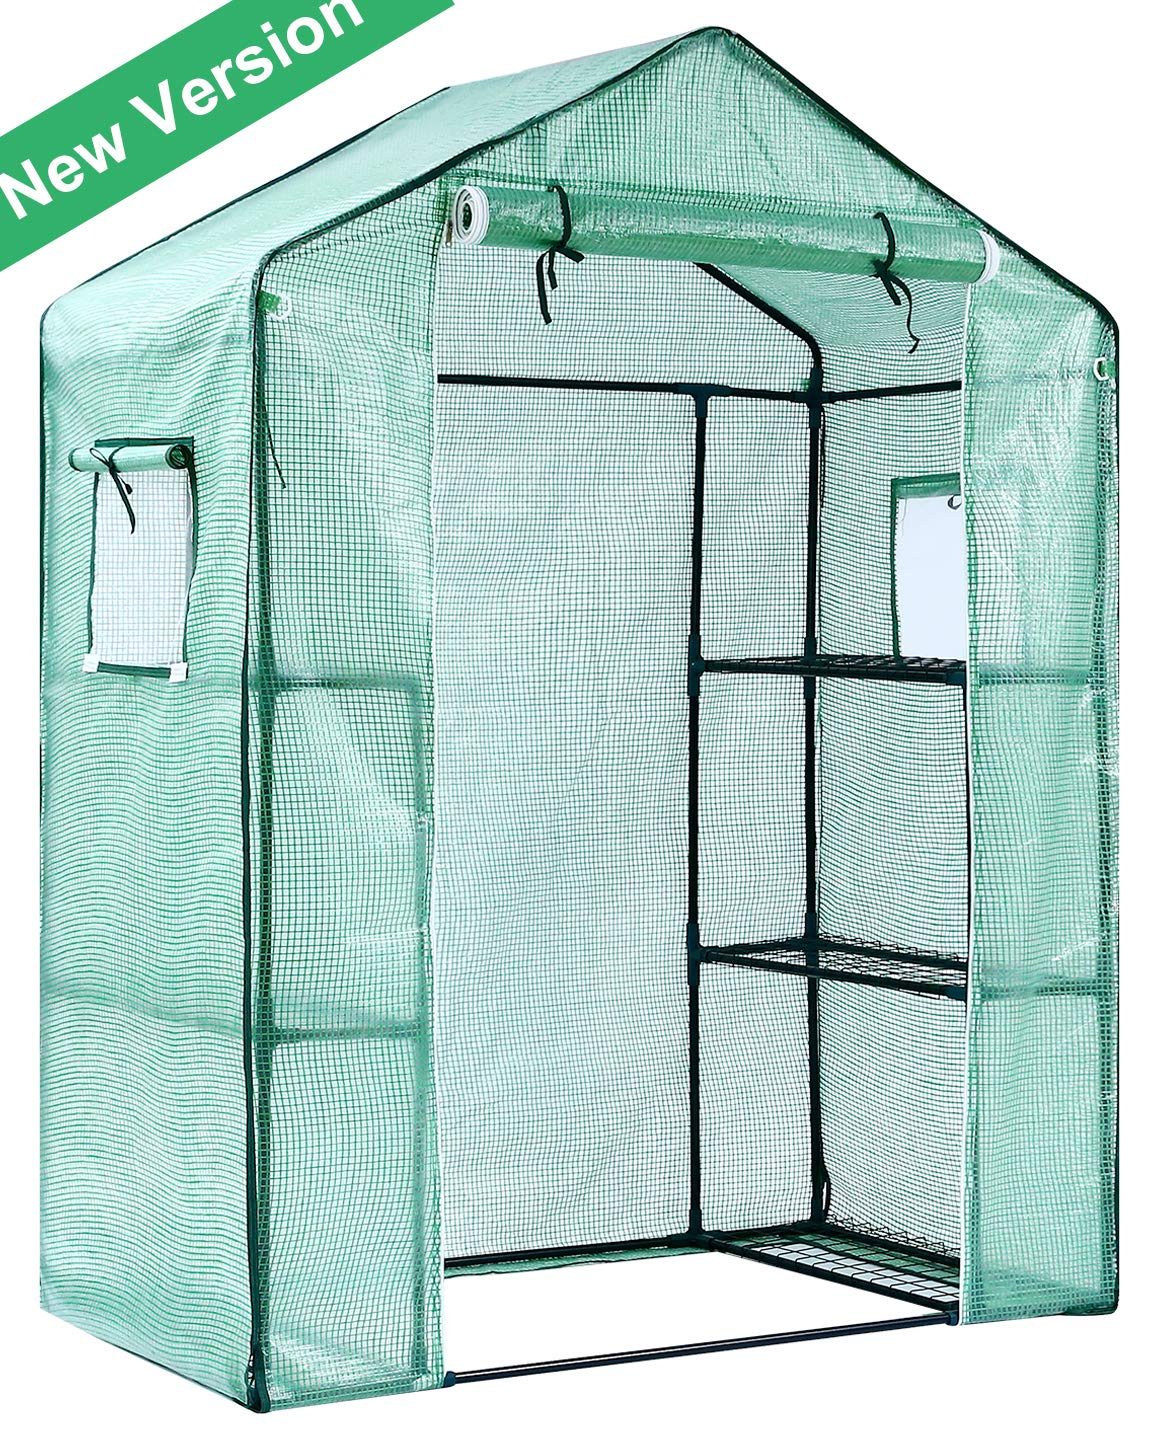 Ohuhu Greenhouse for Outdoors with Observation Windows, 2019 New Version Small Walk-in 3 Tiers 6 Shelves Stands Plant Green House for Seedling, Flowers, Plant Growing, 4.7 x 2.4 x 6.4 FT